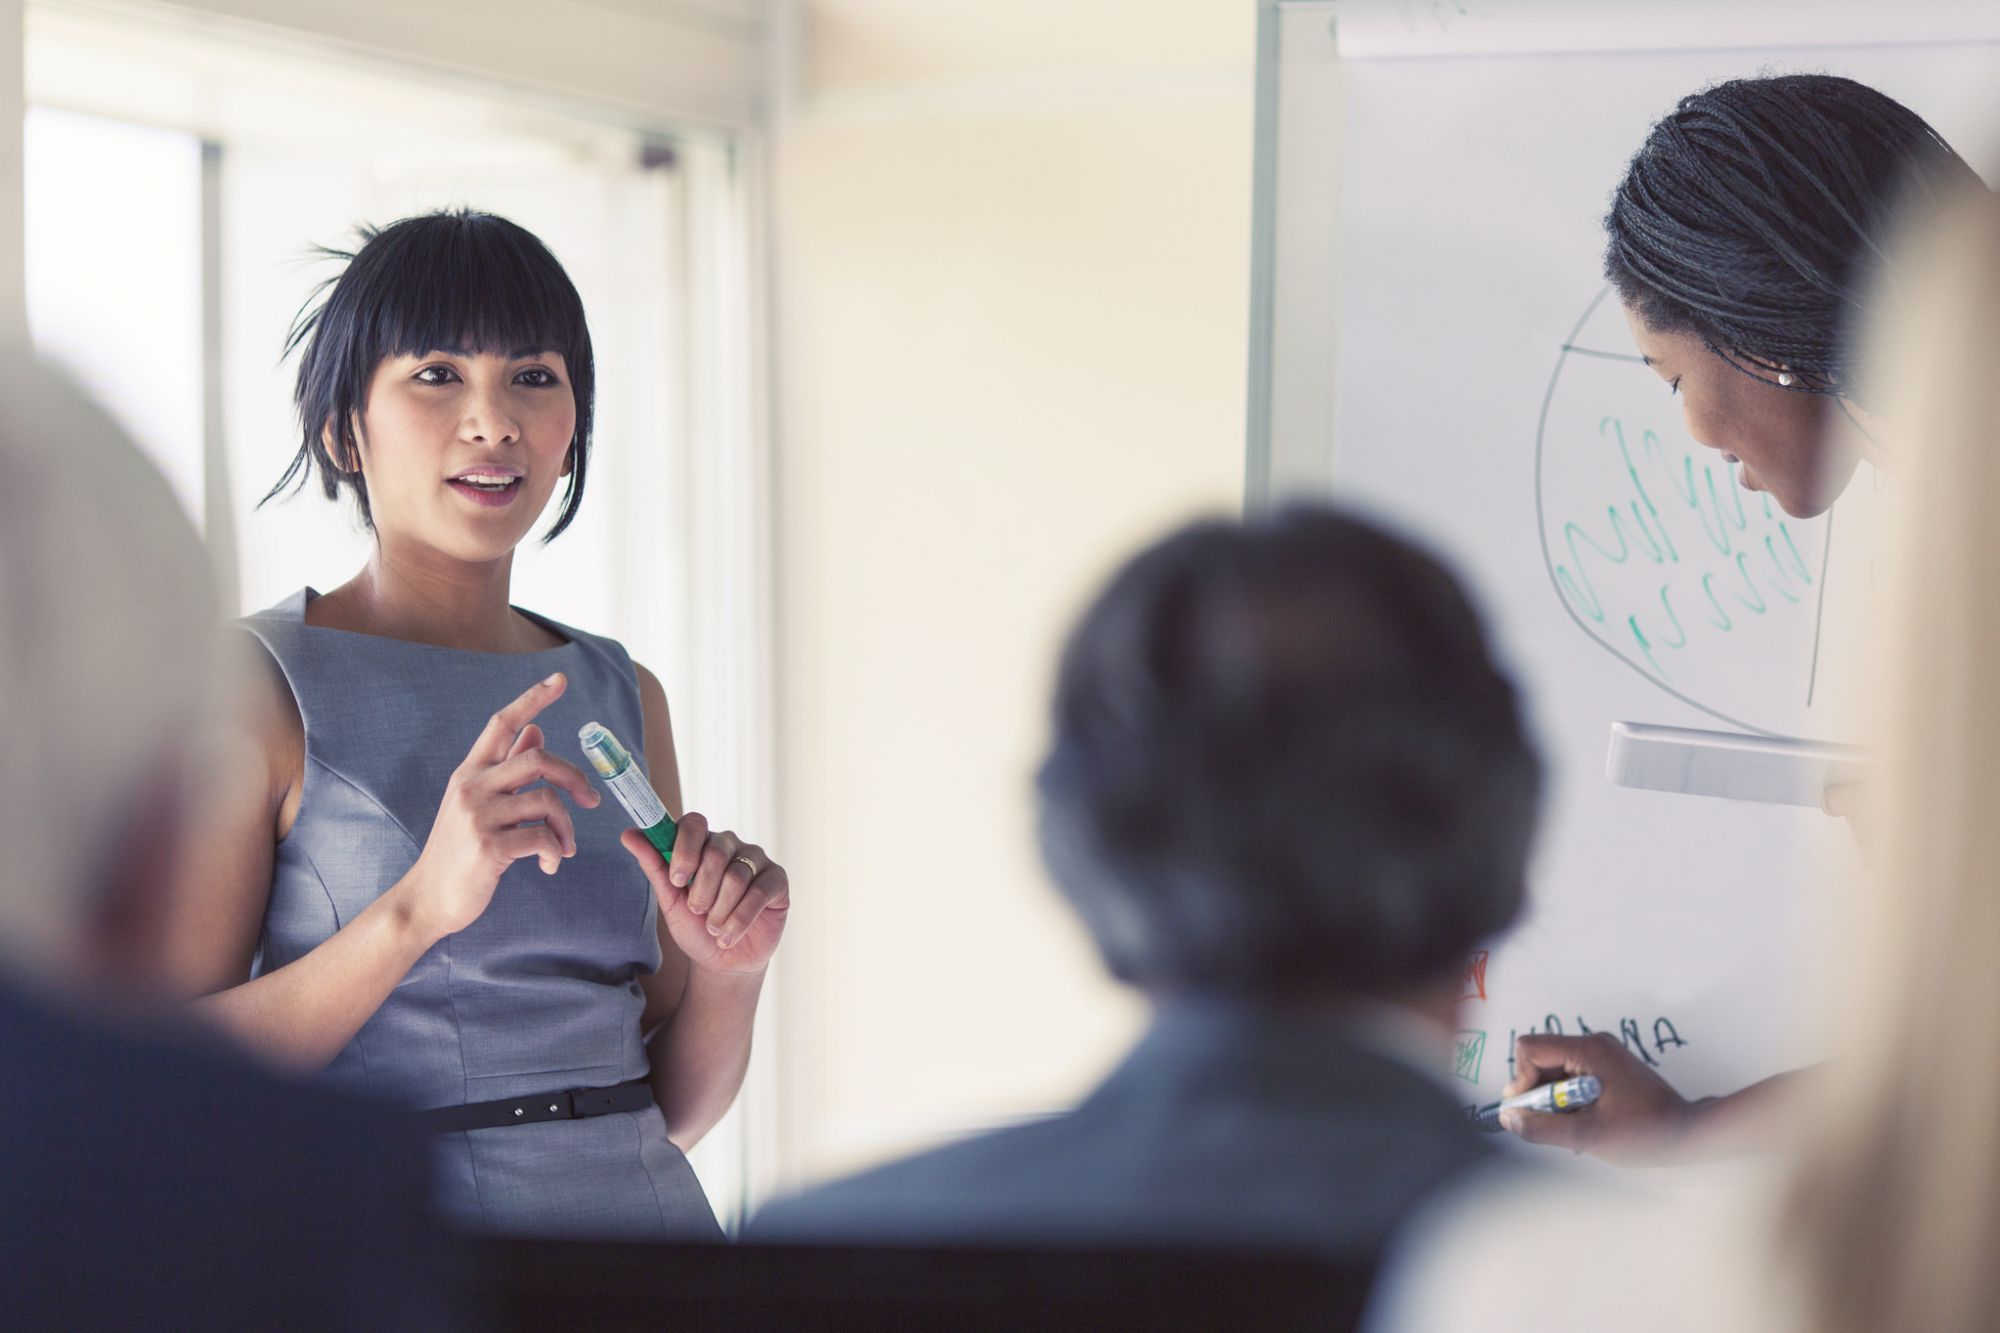 To See More Women in Leadership Roles, Here's What Needs to Happen